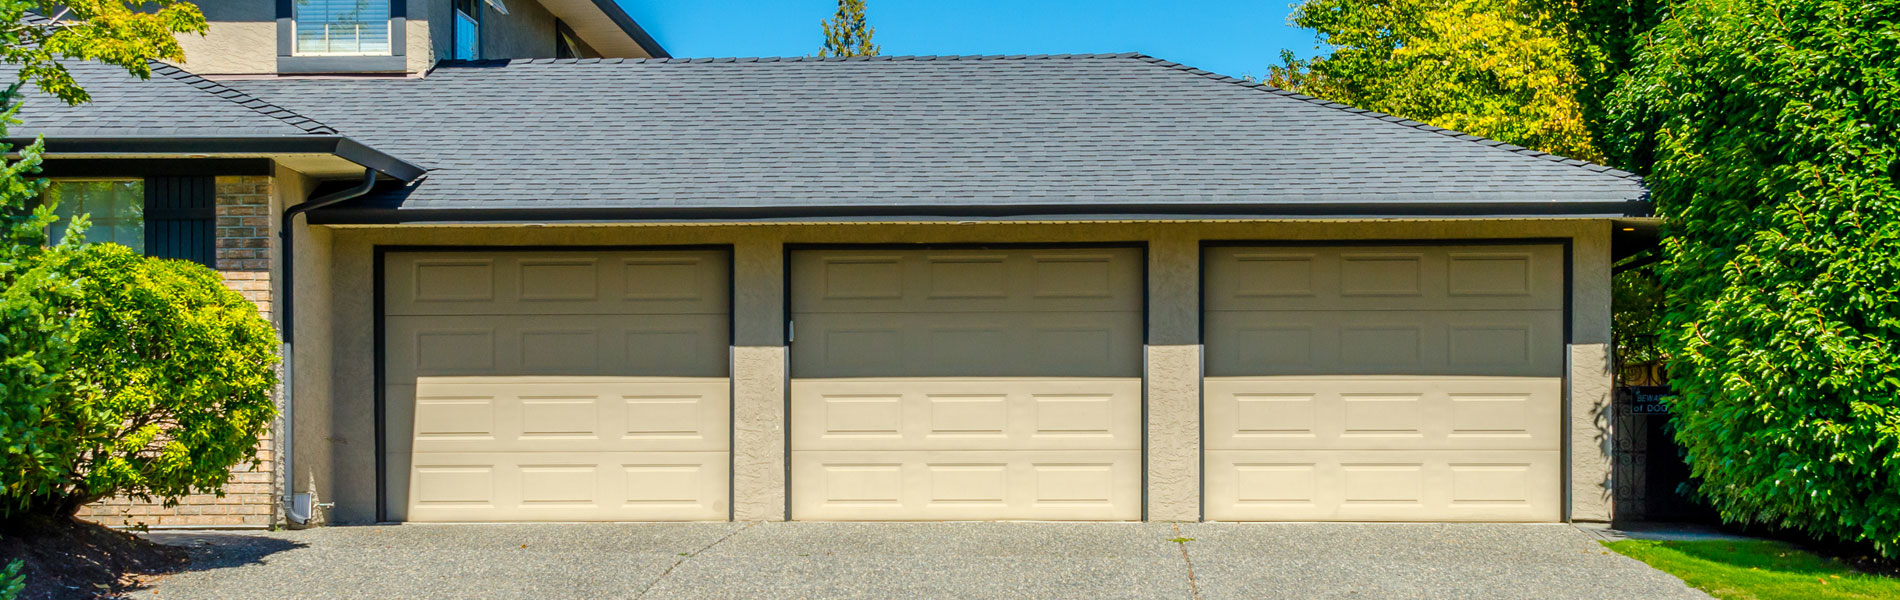 Eagle Garage Door Phoenix, AZ 844-268-1534